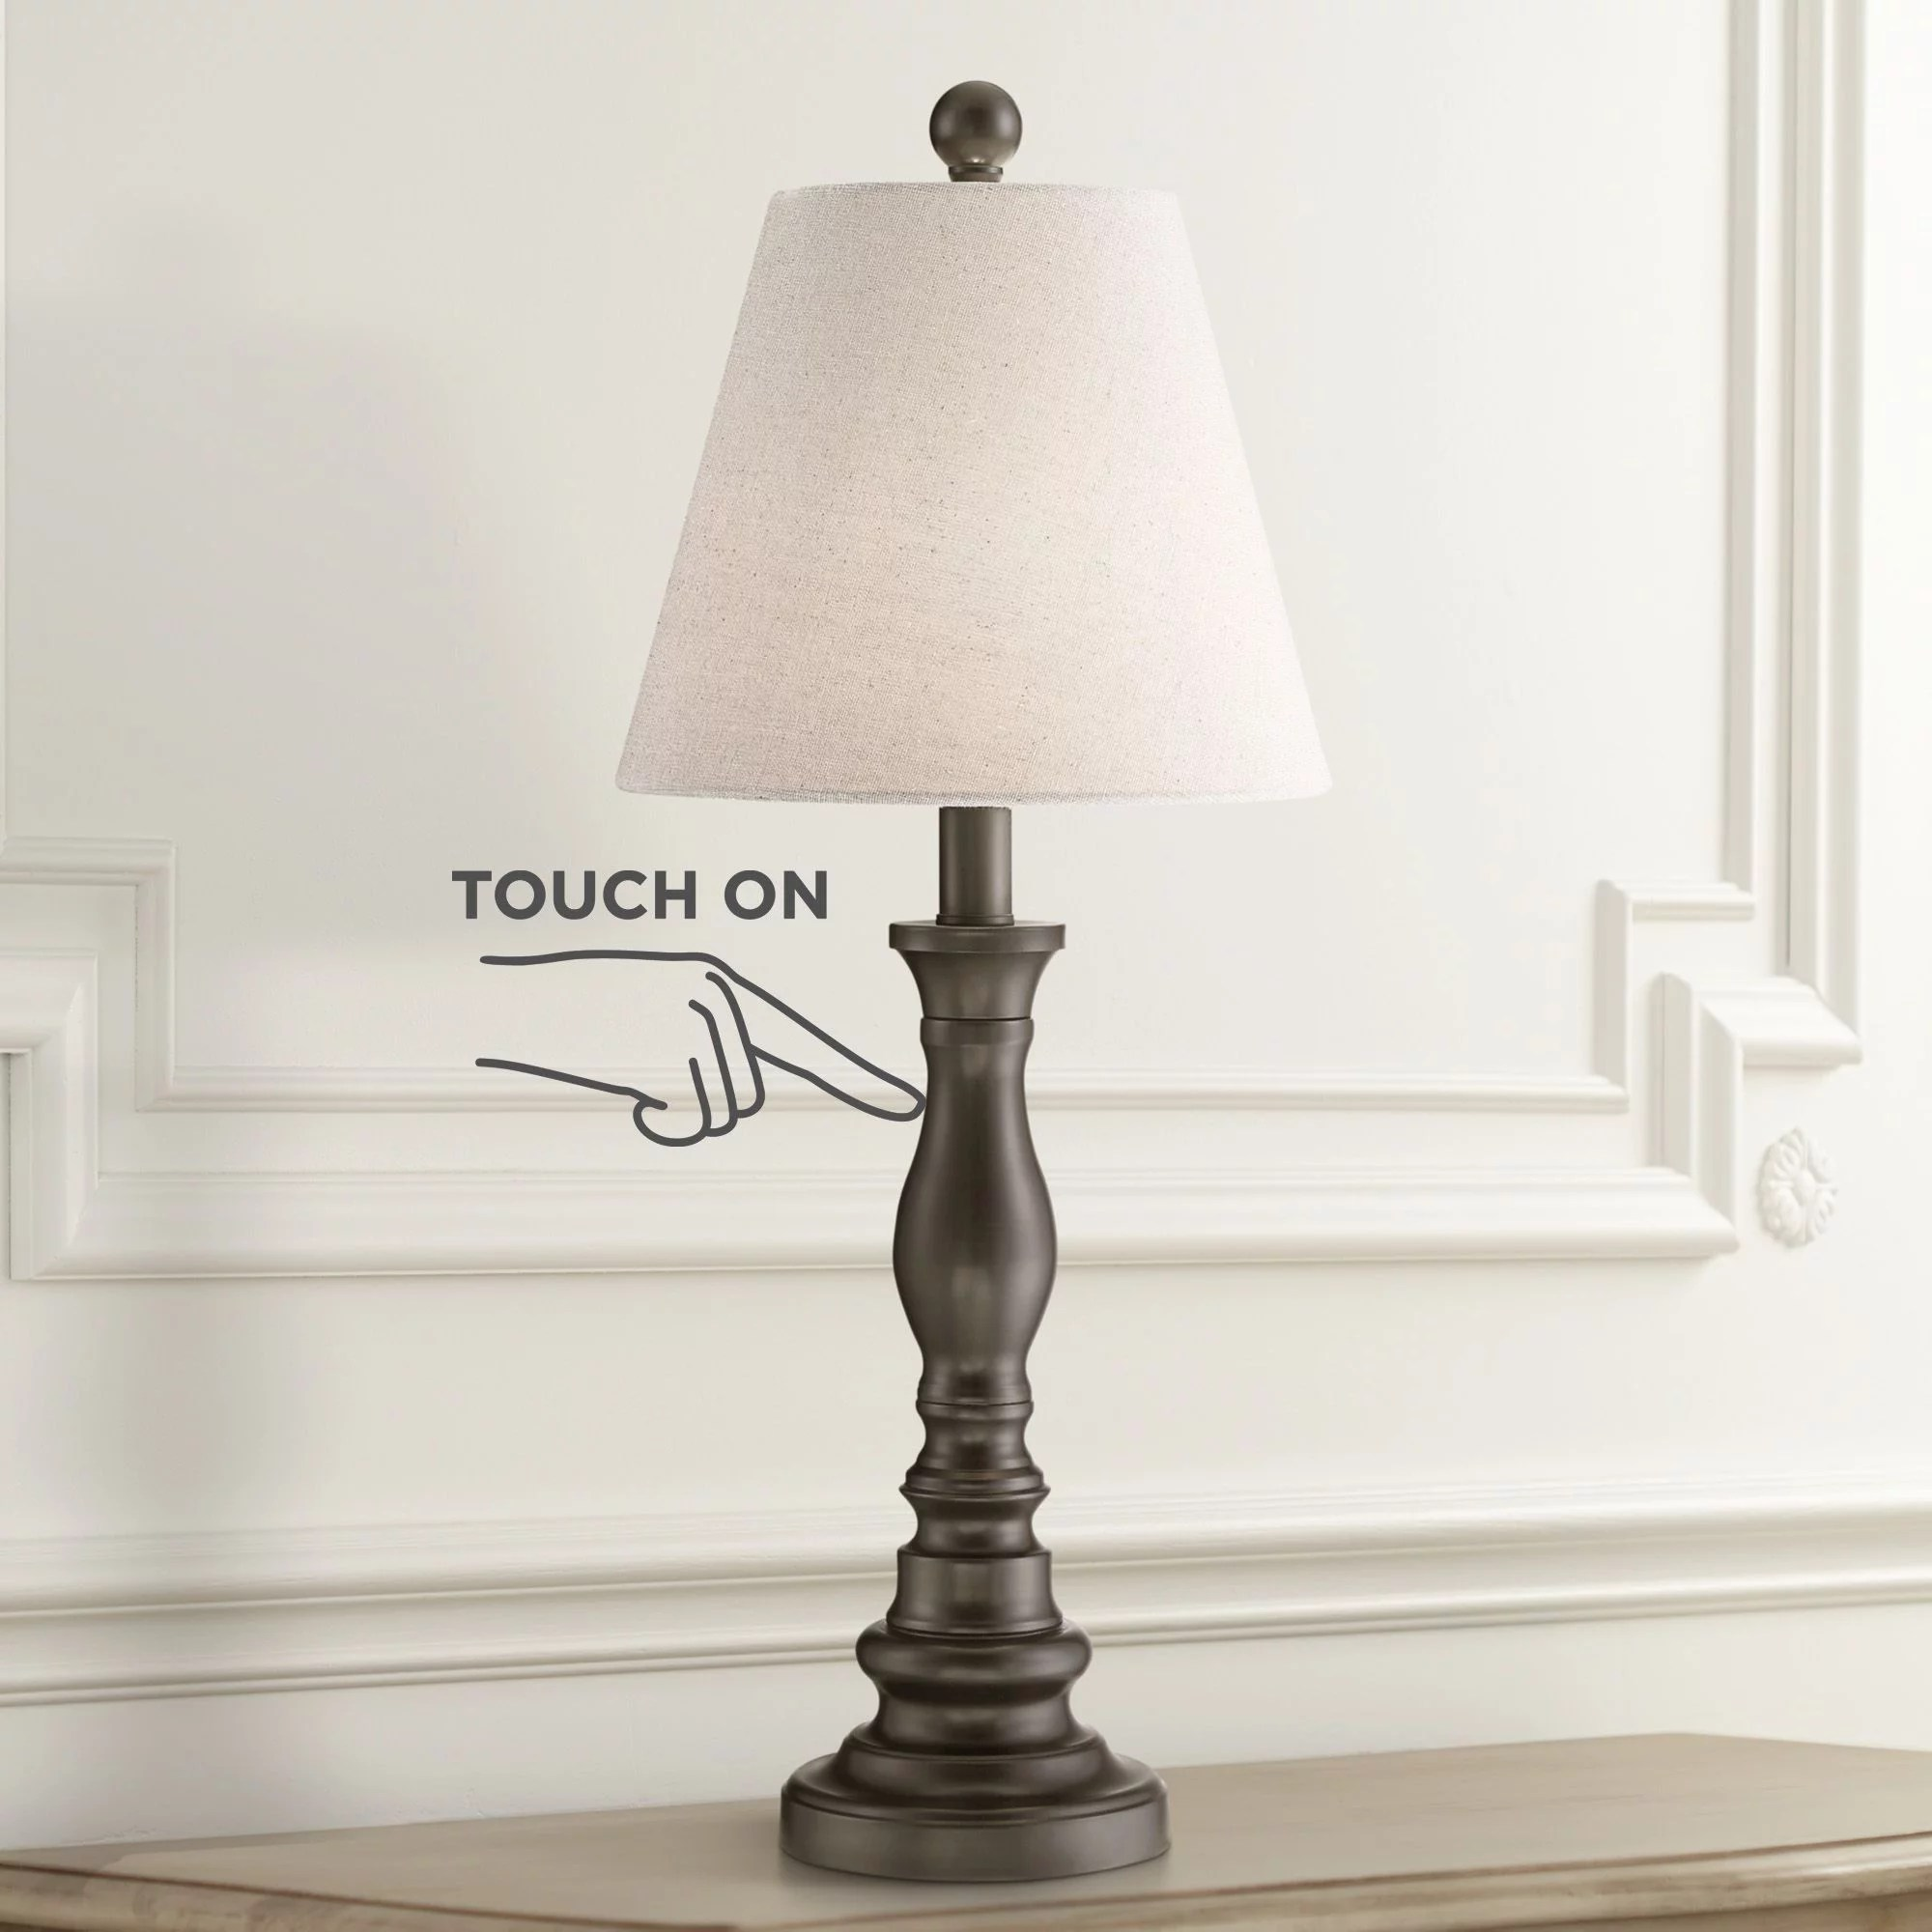 360 lighting traditional desk table lamp dark bronze metal off white empire shade touch on off for living room bedroom office